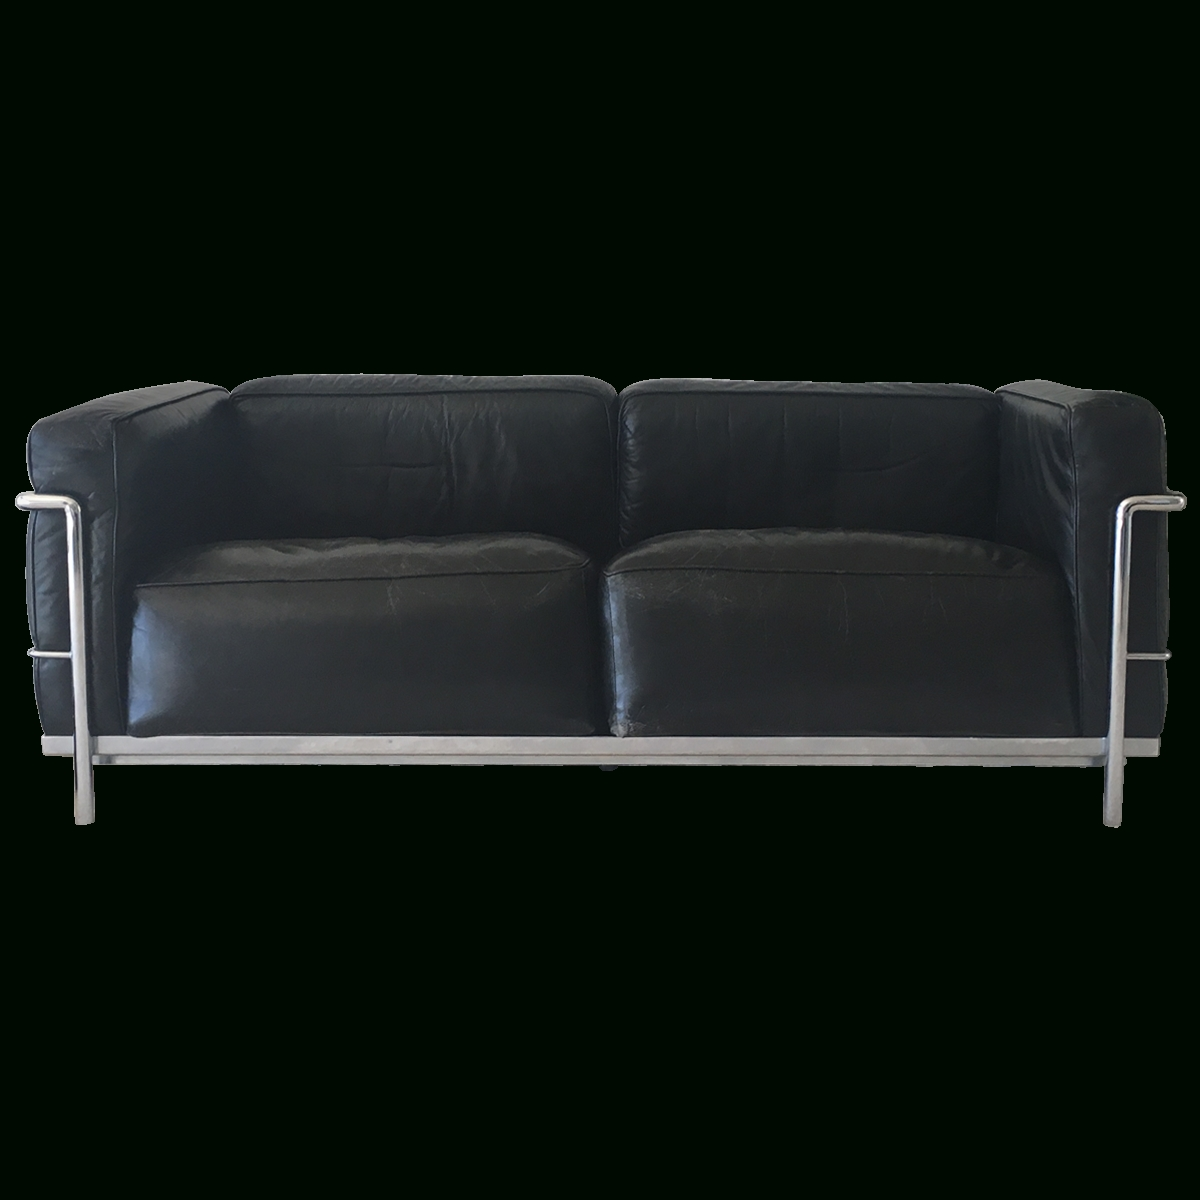 Seating | Designer Sofas, Sectional Sofas, Leather Sofas, And with regard to Sofas With High Backs (Image 21 of 30)